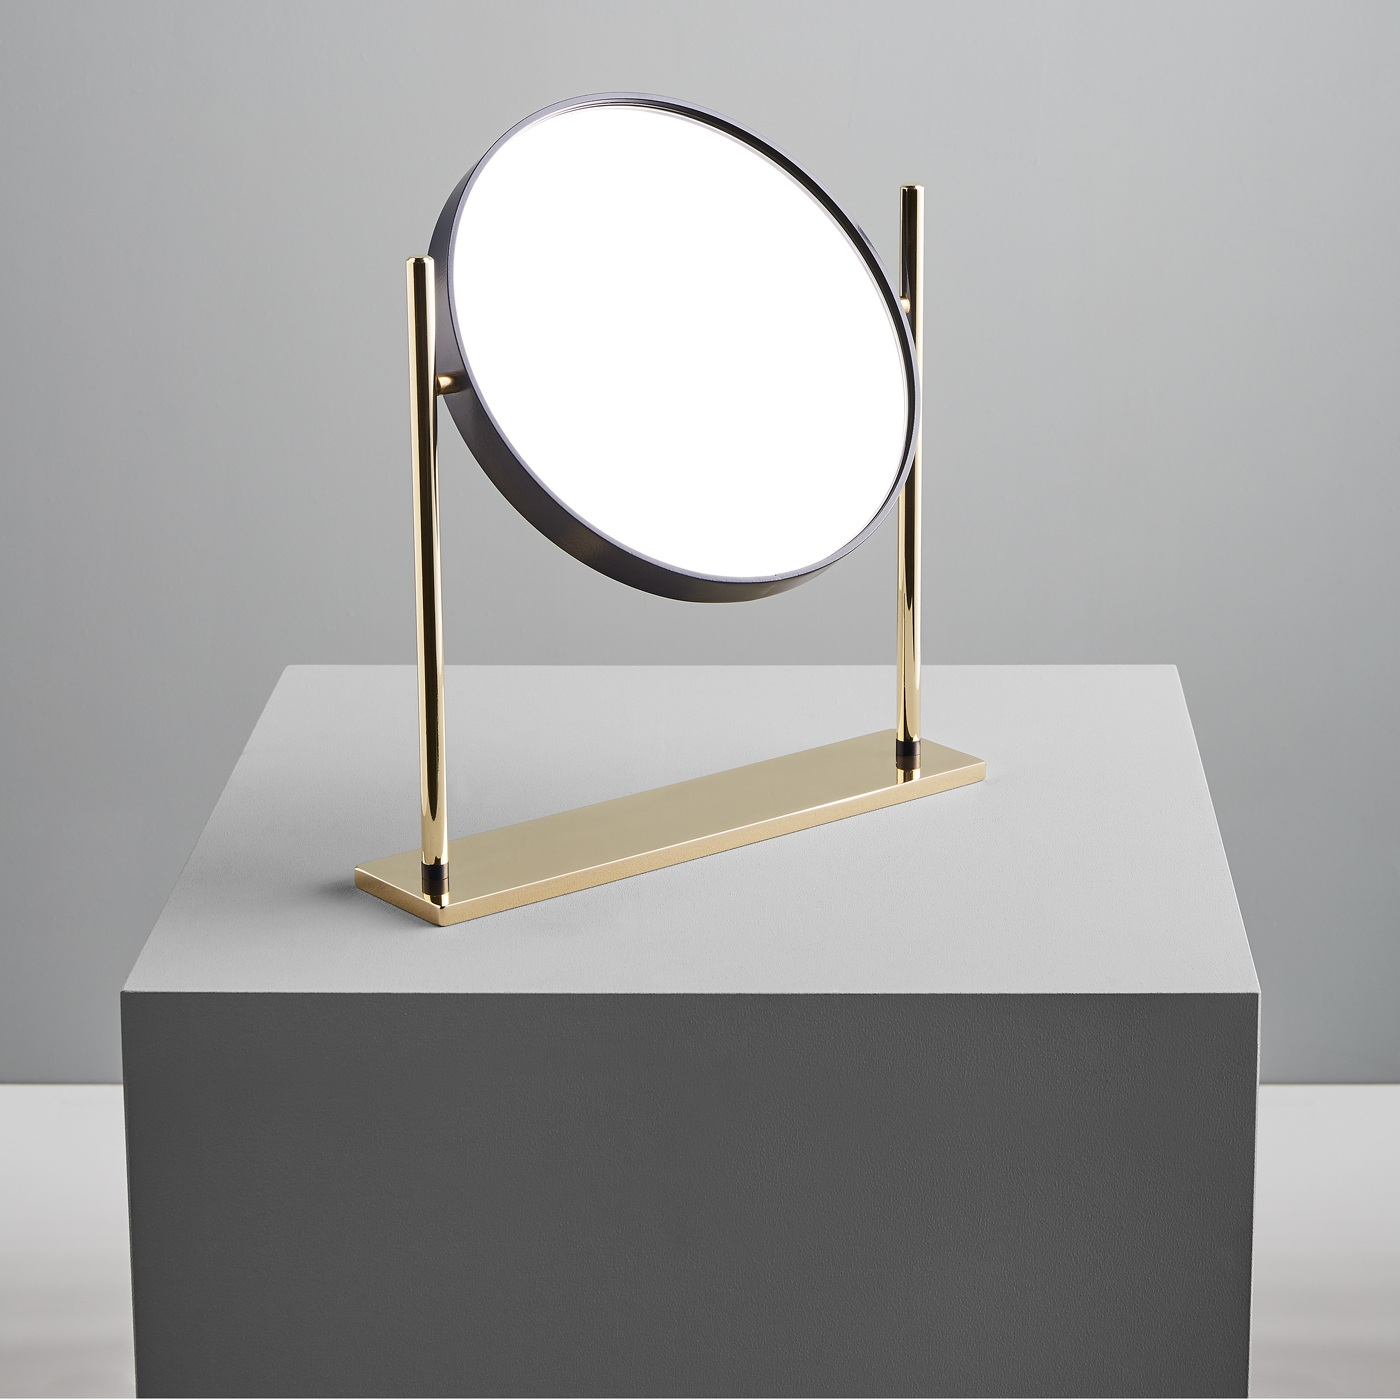 Mirrò, table mirror / Federica Biasi for Mingardo